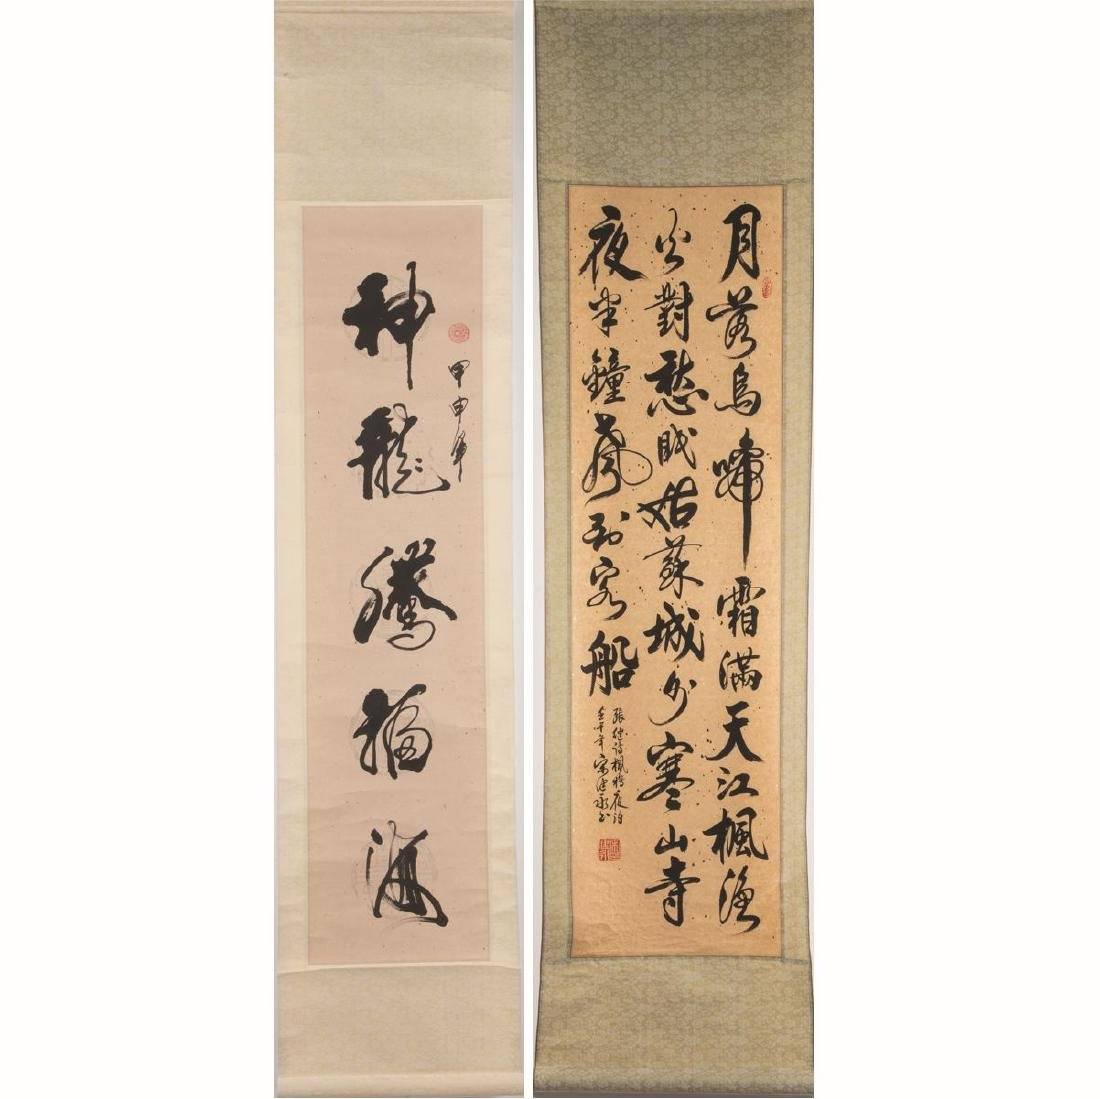 Two Chinese Calligraphy Scrolls, 20th Century,